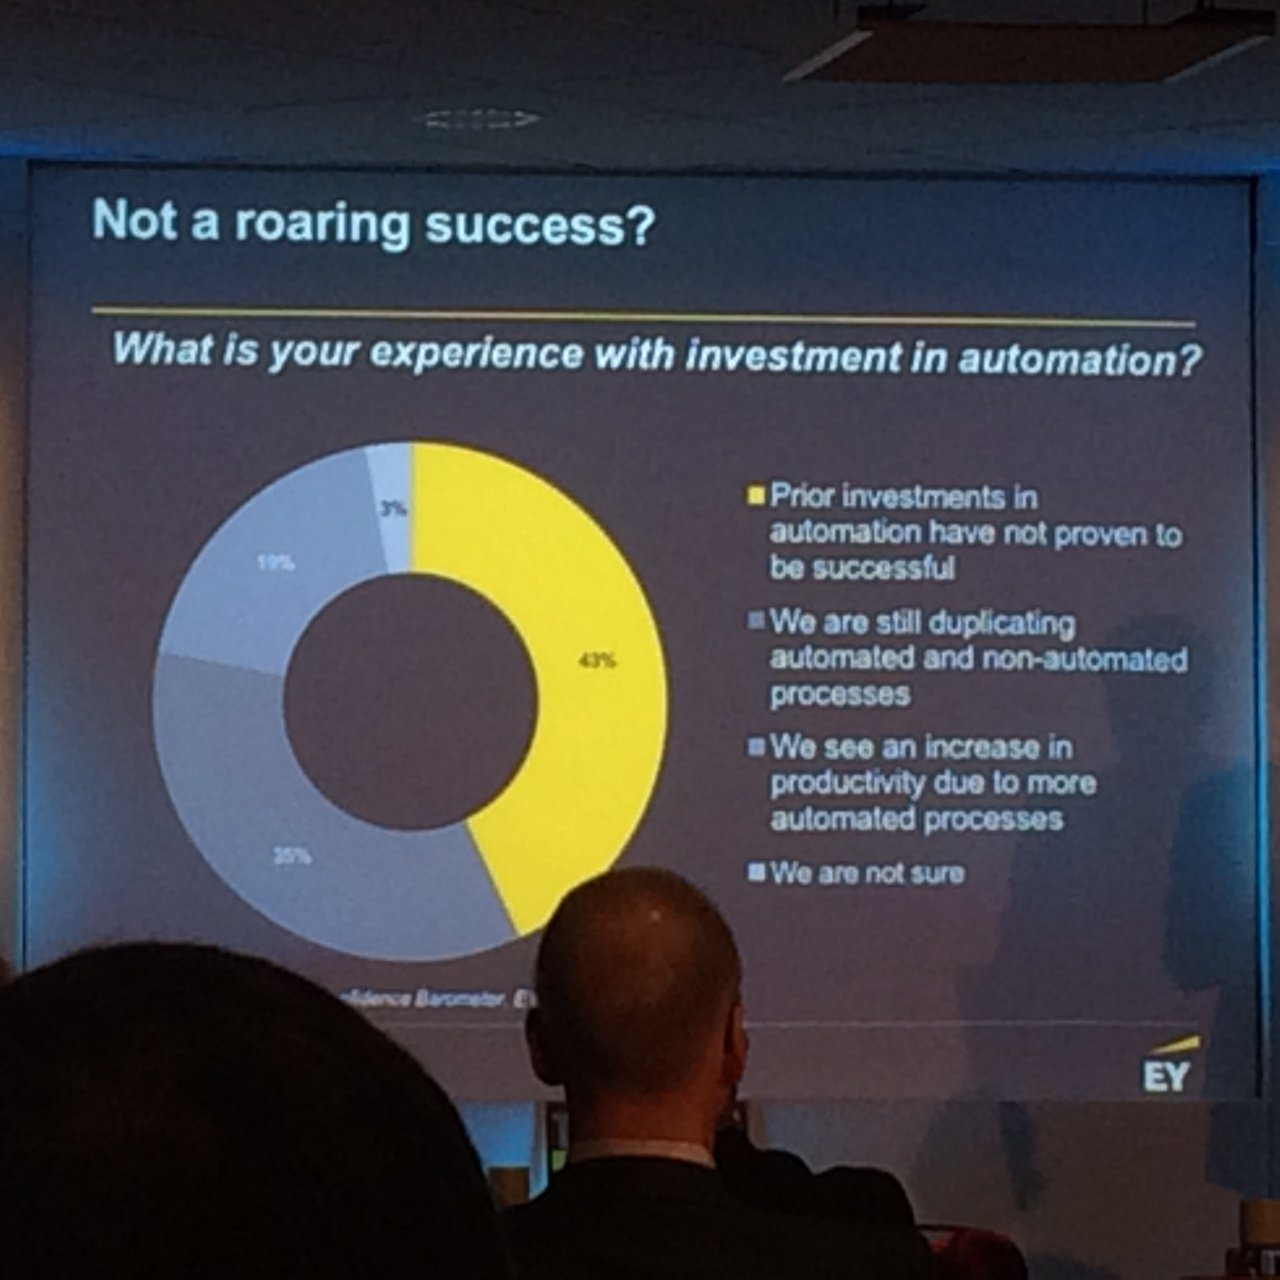 "#GTD2016 - First up, EY Chief Economist: ""Does the current era of digitisation increase value? Many still learning and not profit focussed."" https://t.co/io6yoy5V1A"